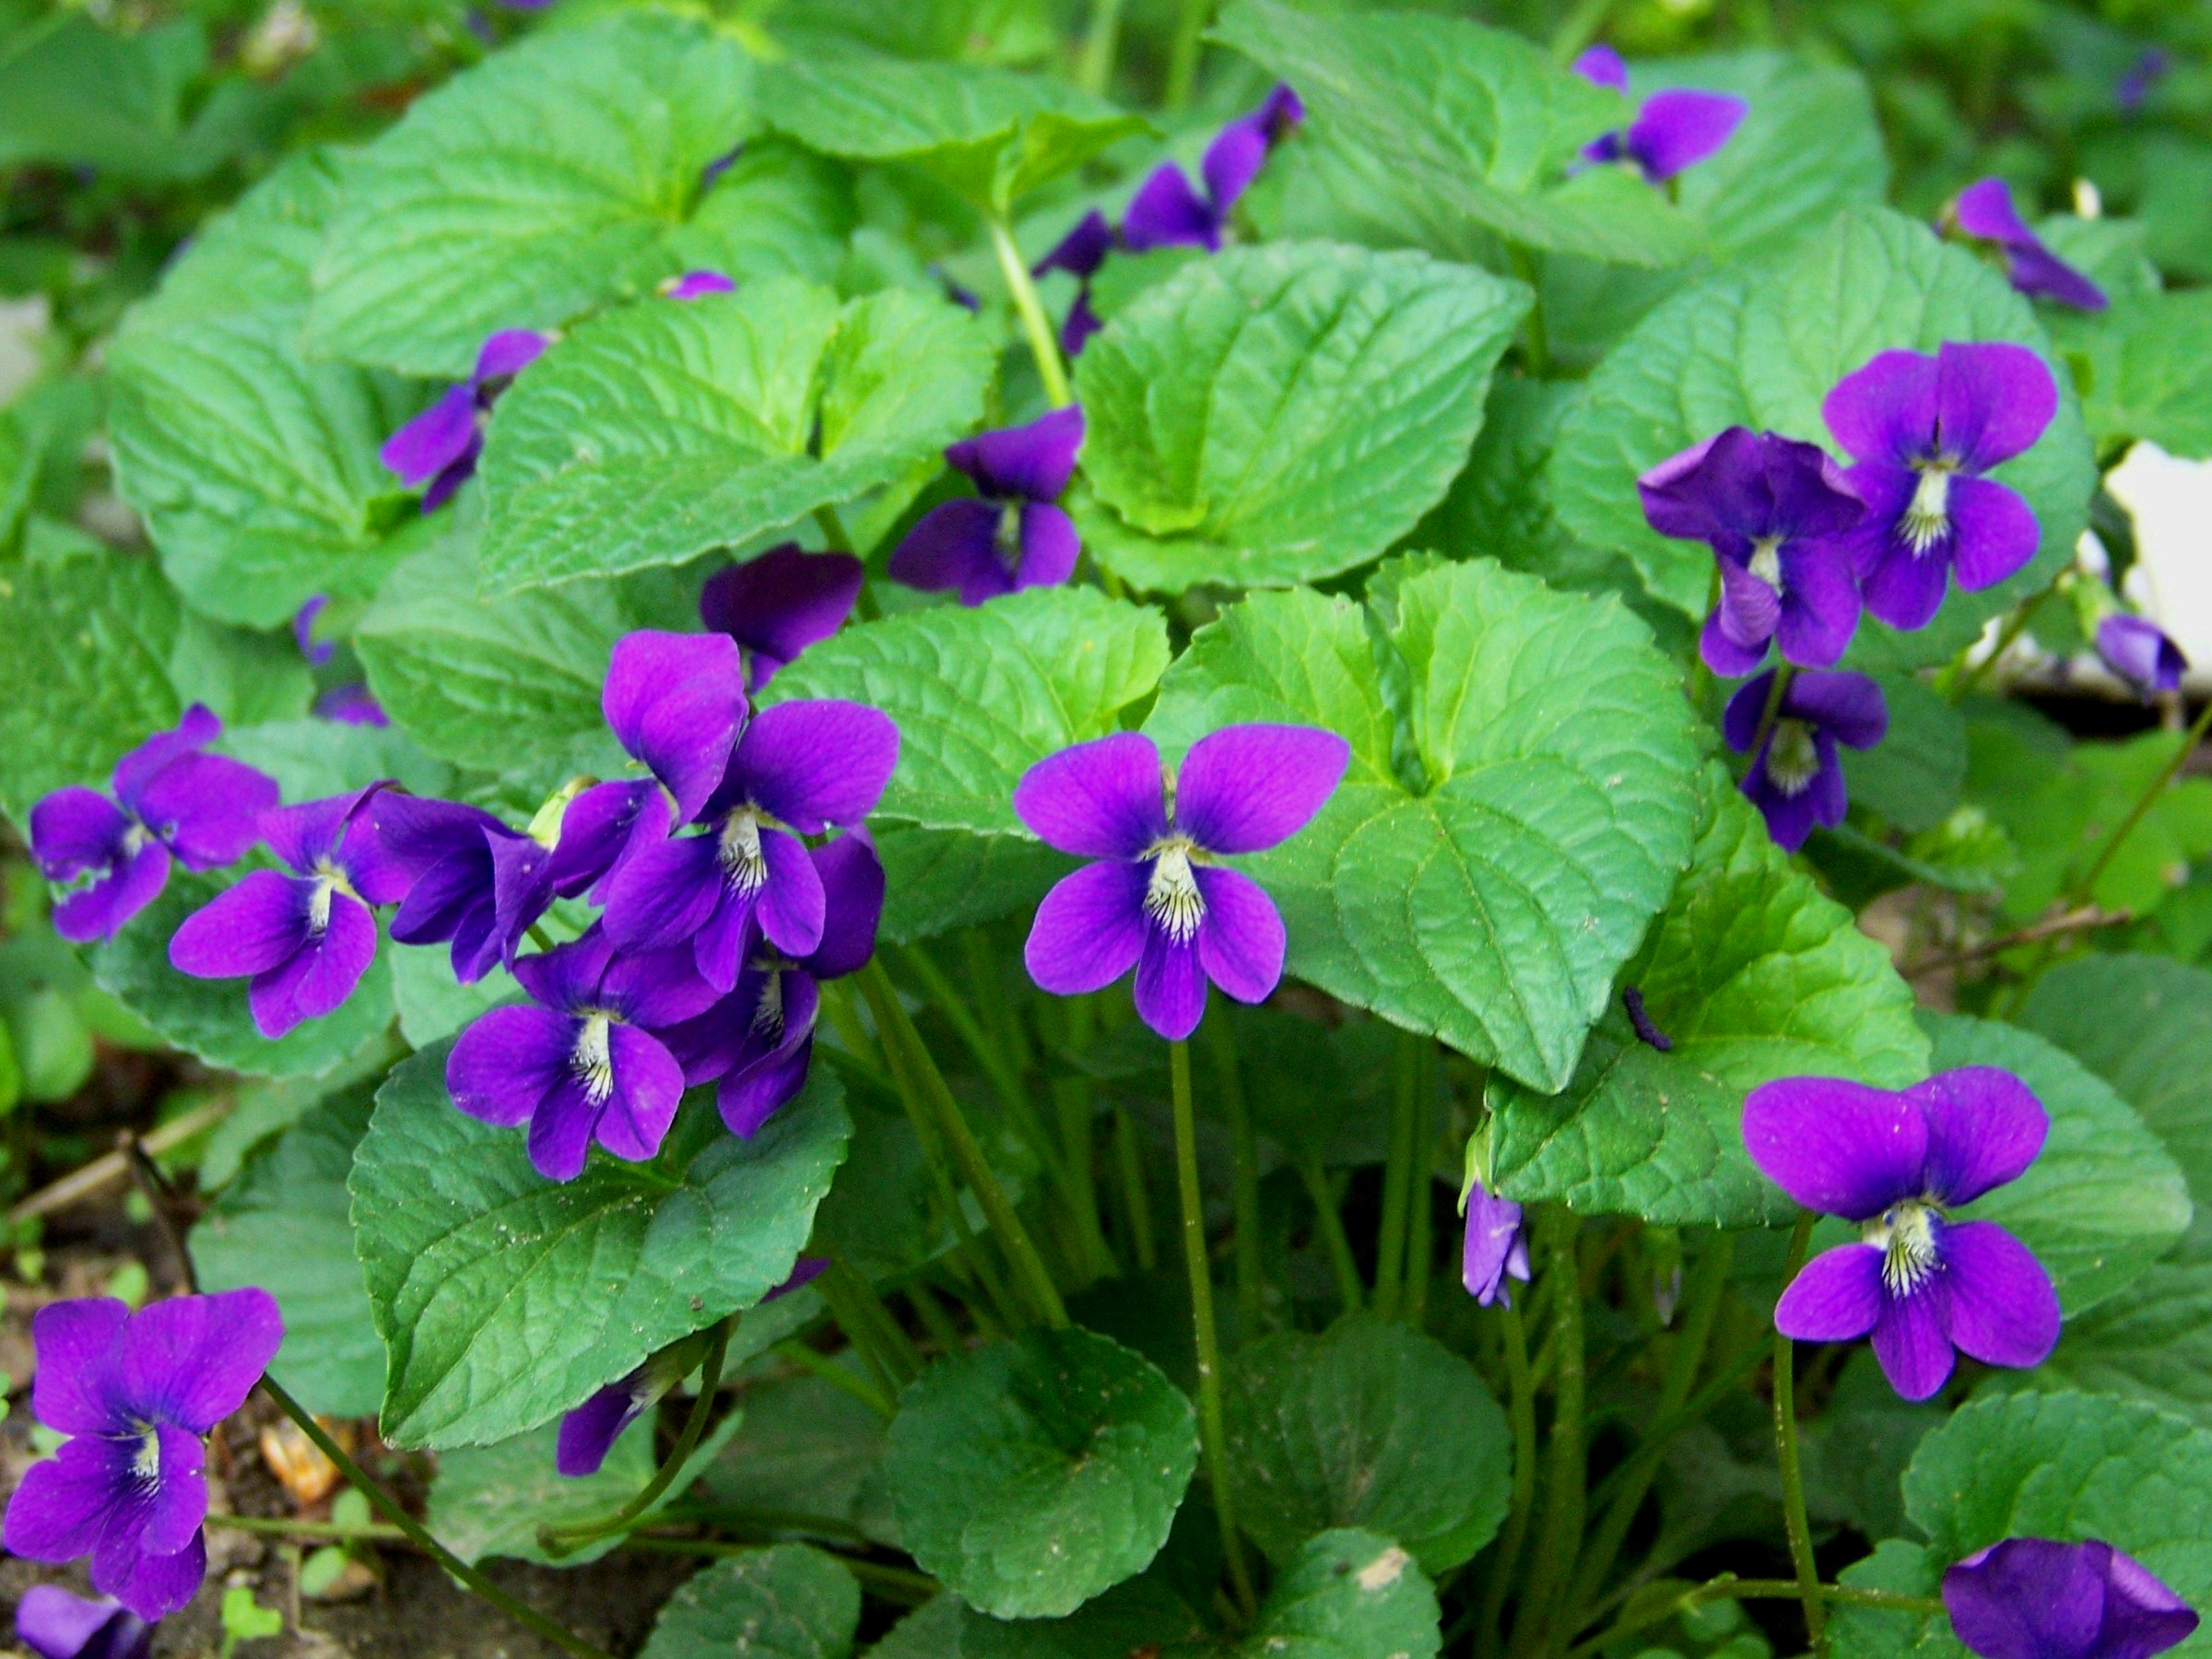 Weed of the Week: Wild Violets - Featured Image